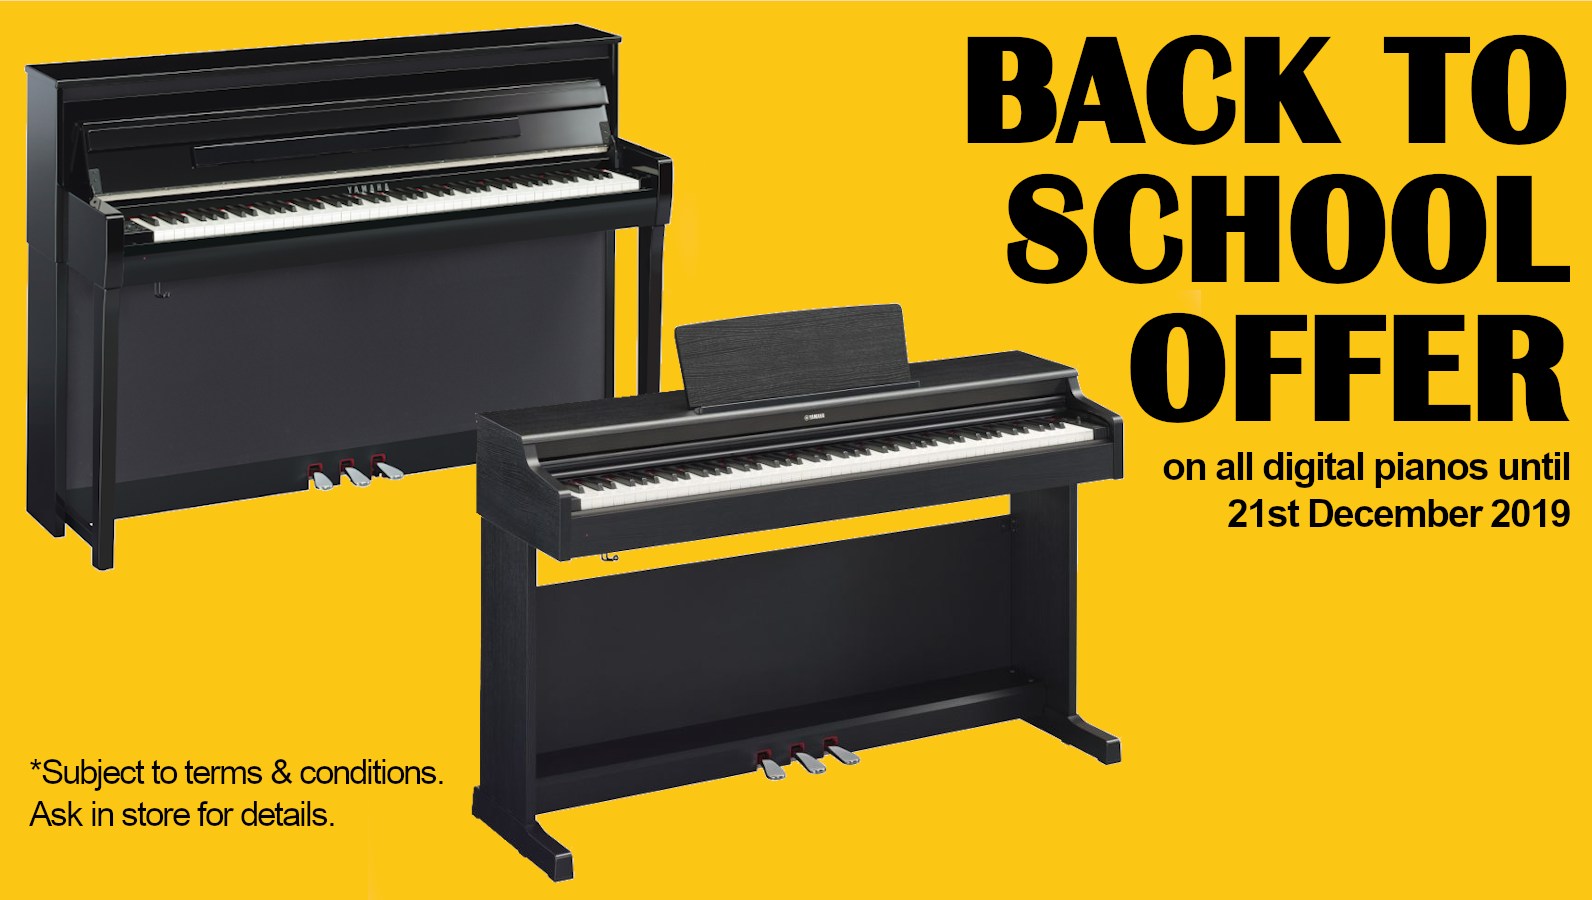 Back to School Digital Pianos Offer 2019